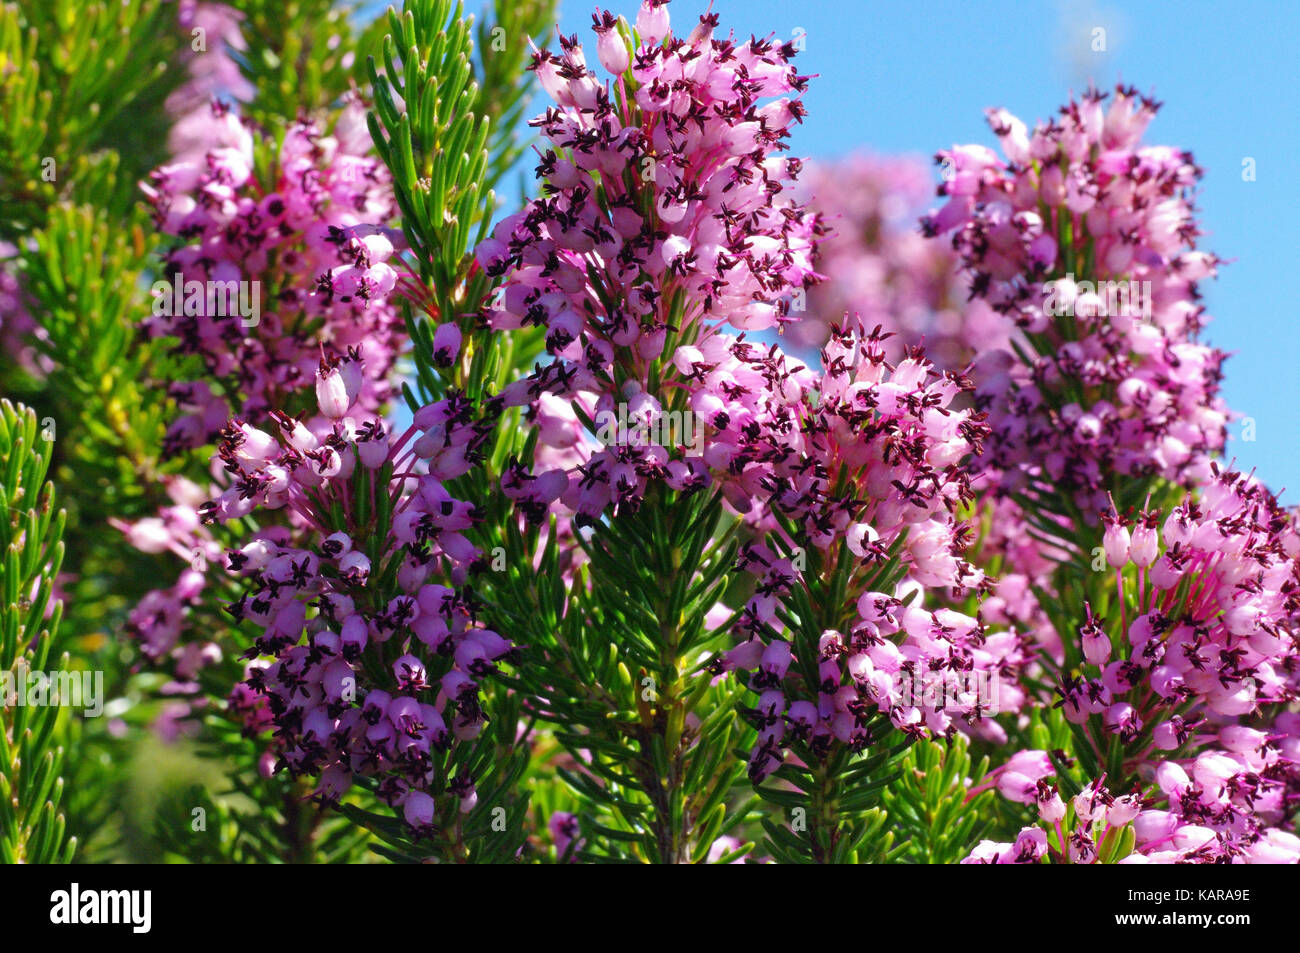 this is Erica multiflora, the Mediterranean Heath, native to the Mediterranean Basin, family Ericaceae - Stock Image